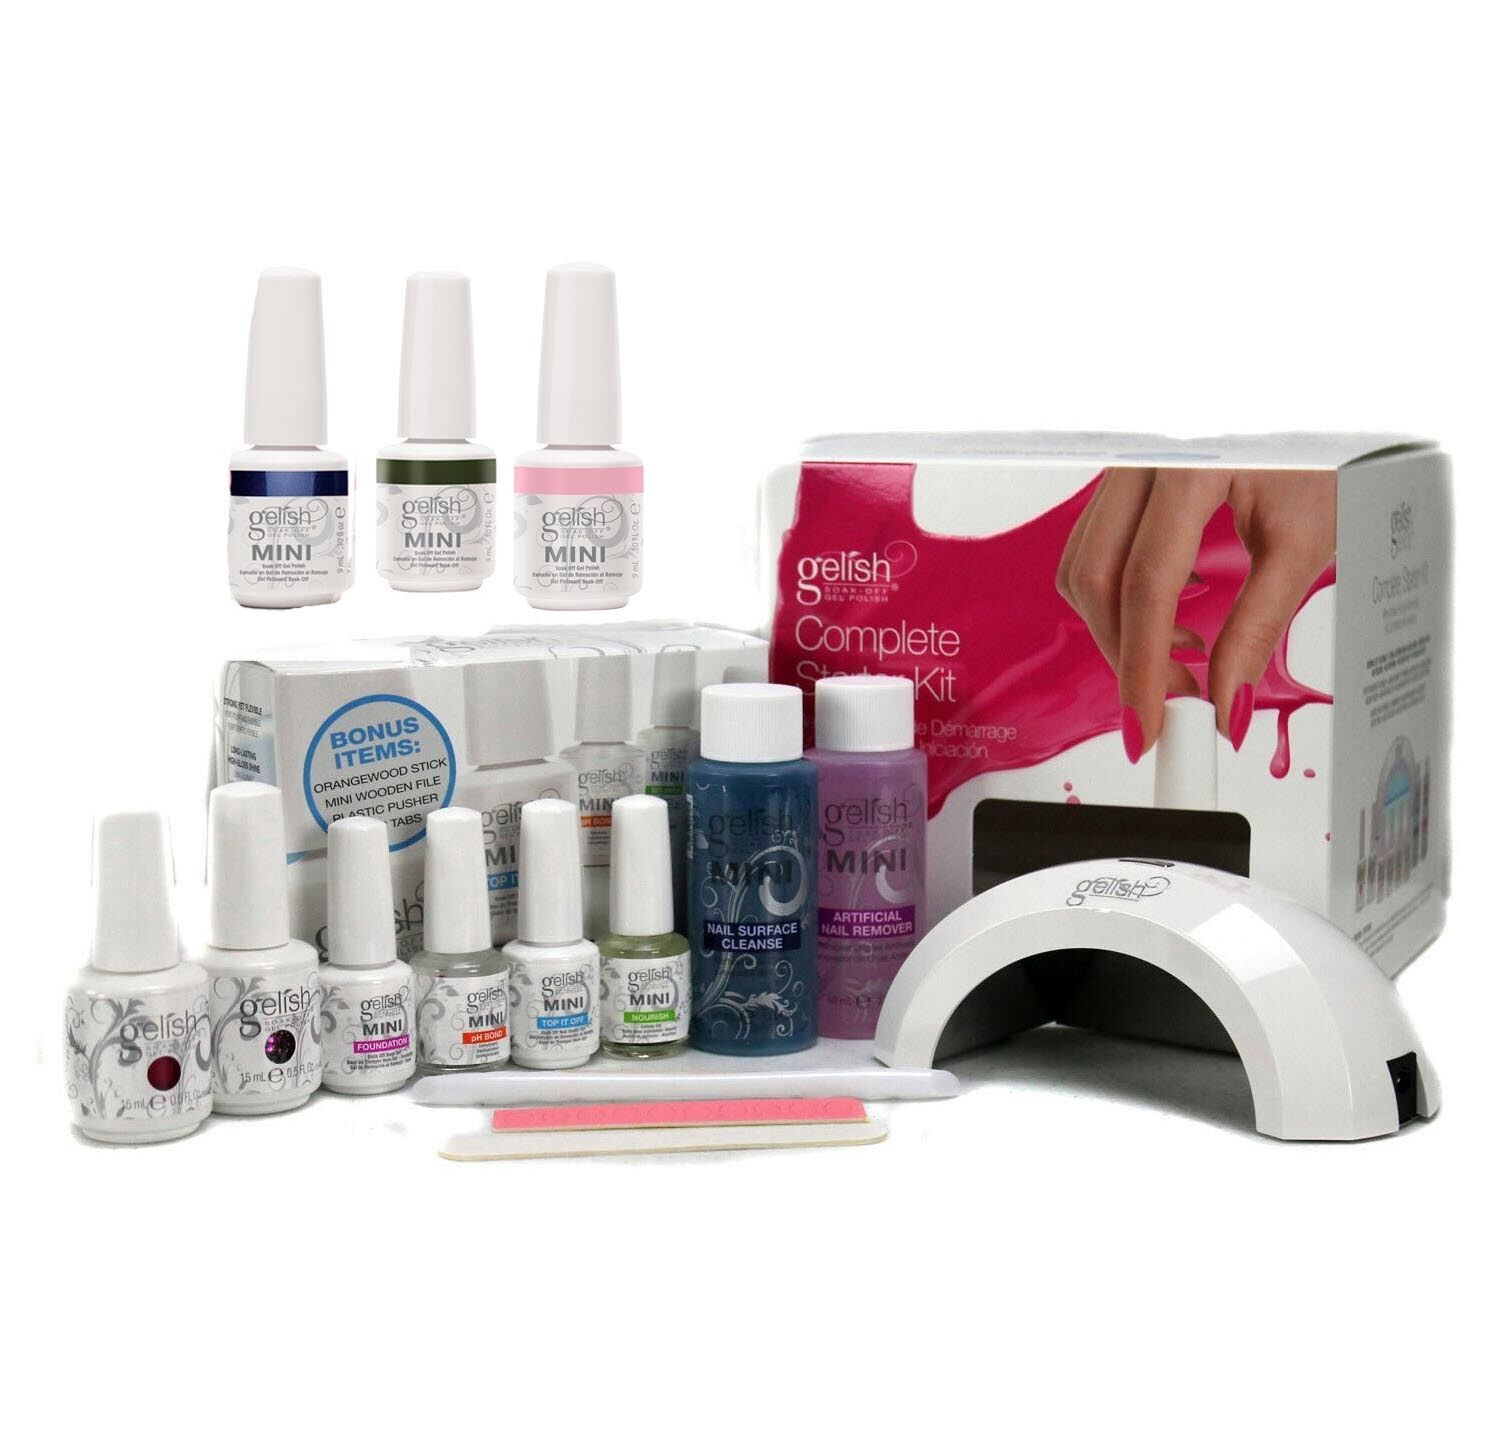 Gelish Mini Harmony Complete Starter LED Gel Nail Polish Kit - Includes 5 Colors